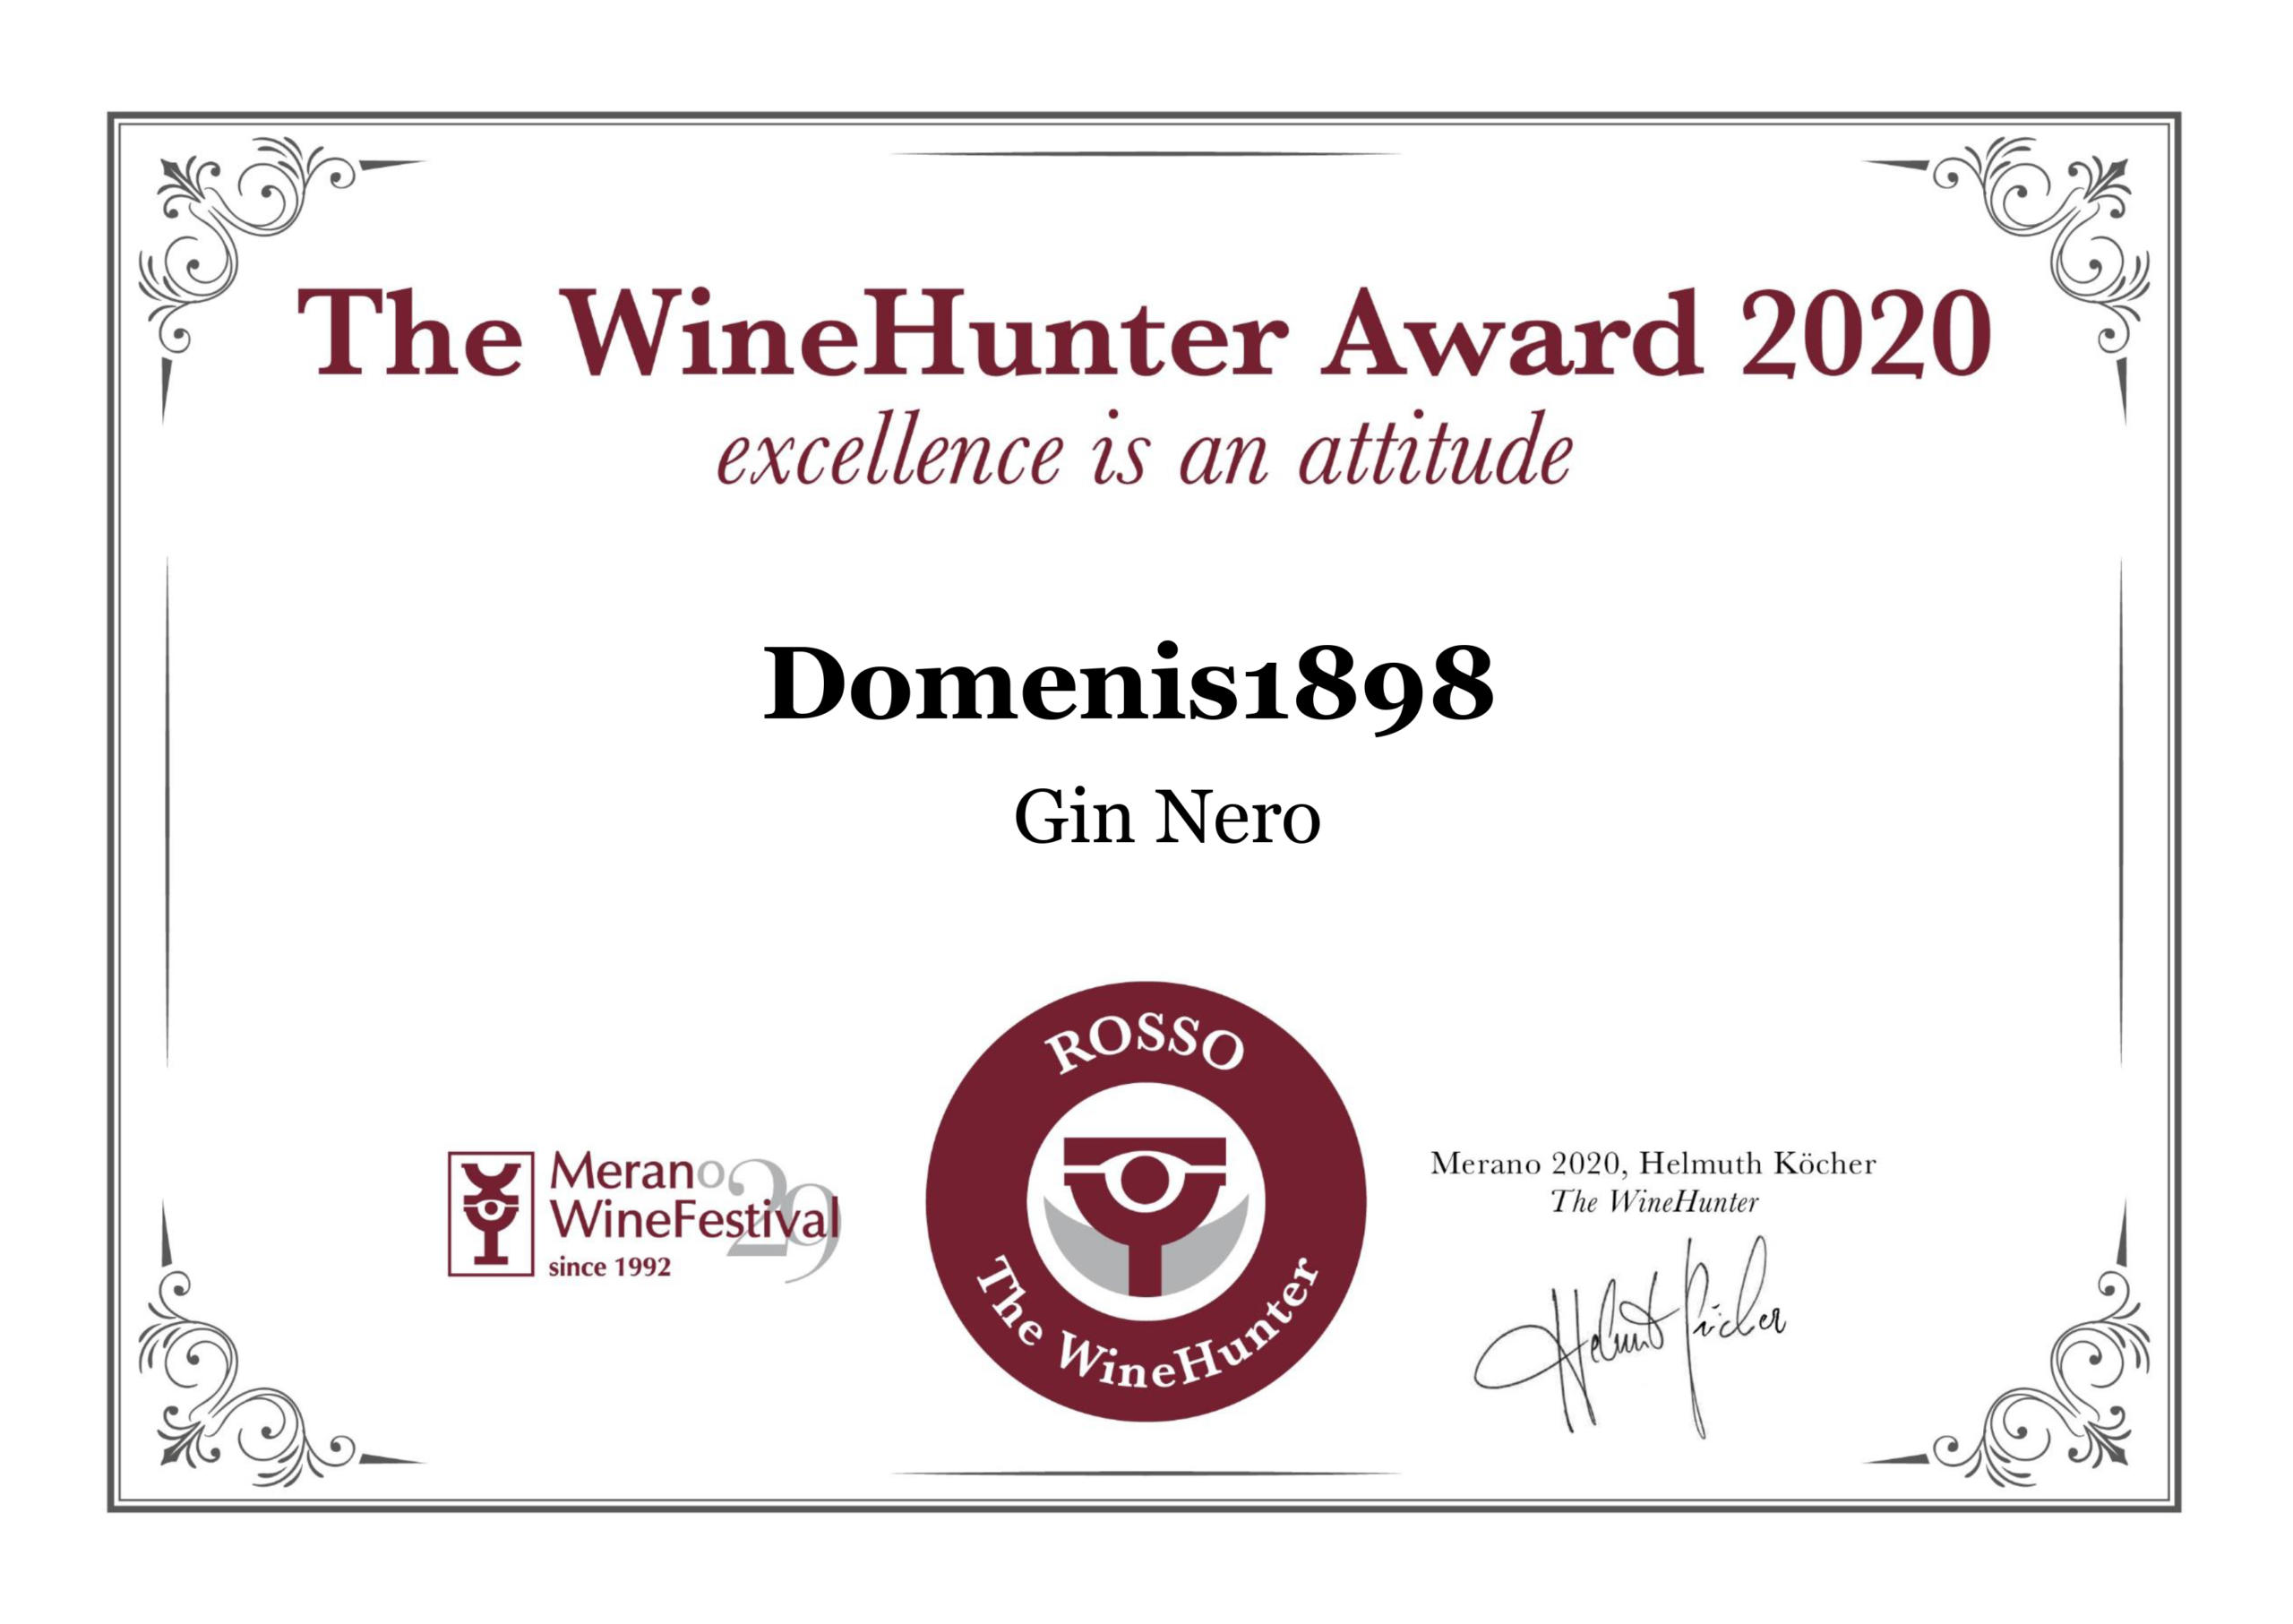 THE WINEHUNTER AWARD 2020 – PREMIO ROSSO – PL GIN NERO